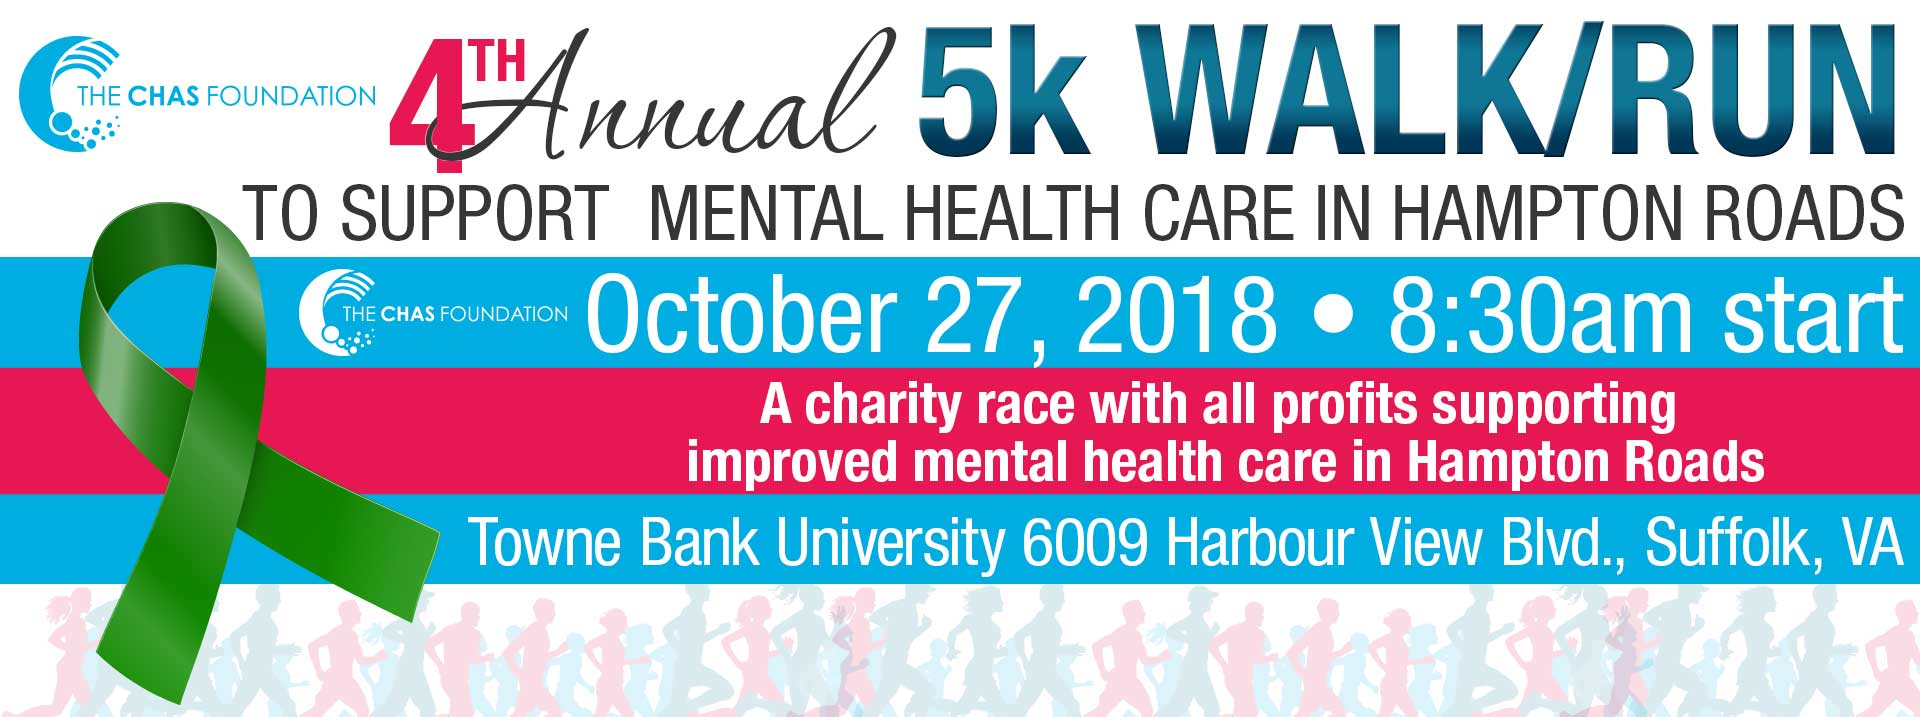 4th Annual Chas Foundation 5K Walk/Run